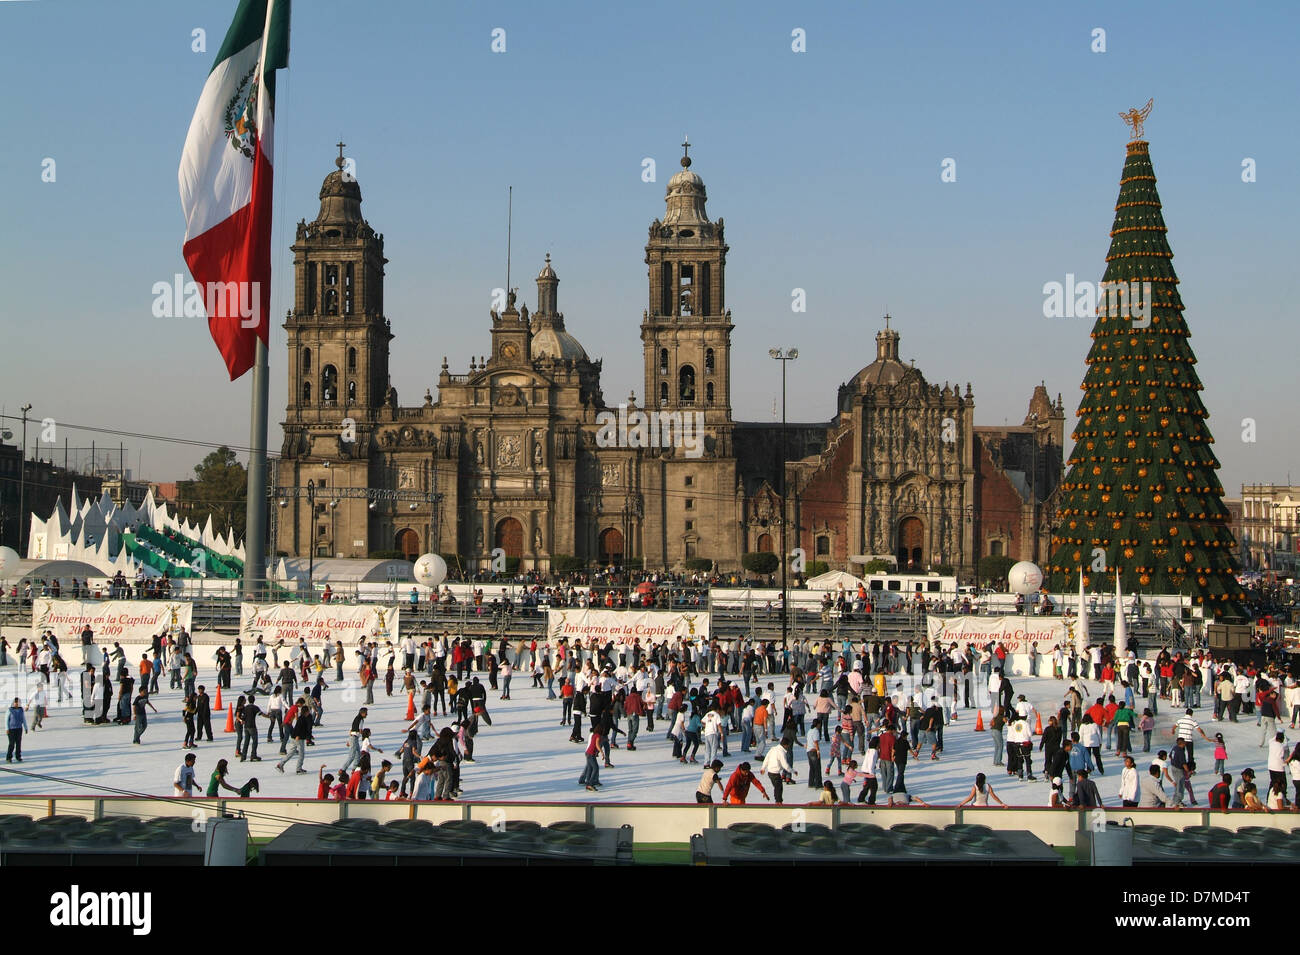 Images Of Zocalo In Mexico Christmas 2021 Ice Rink For Xmas At Zocalo Square On Mexico City Stock Photo Alamy